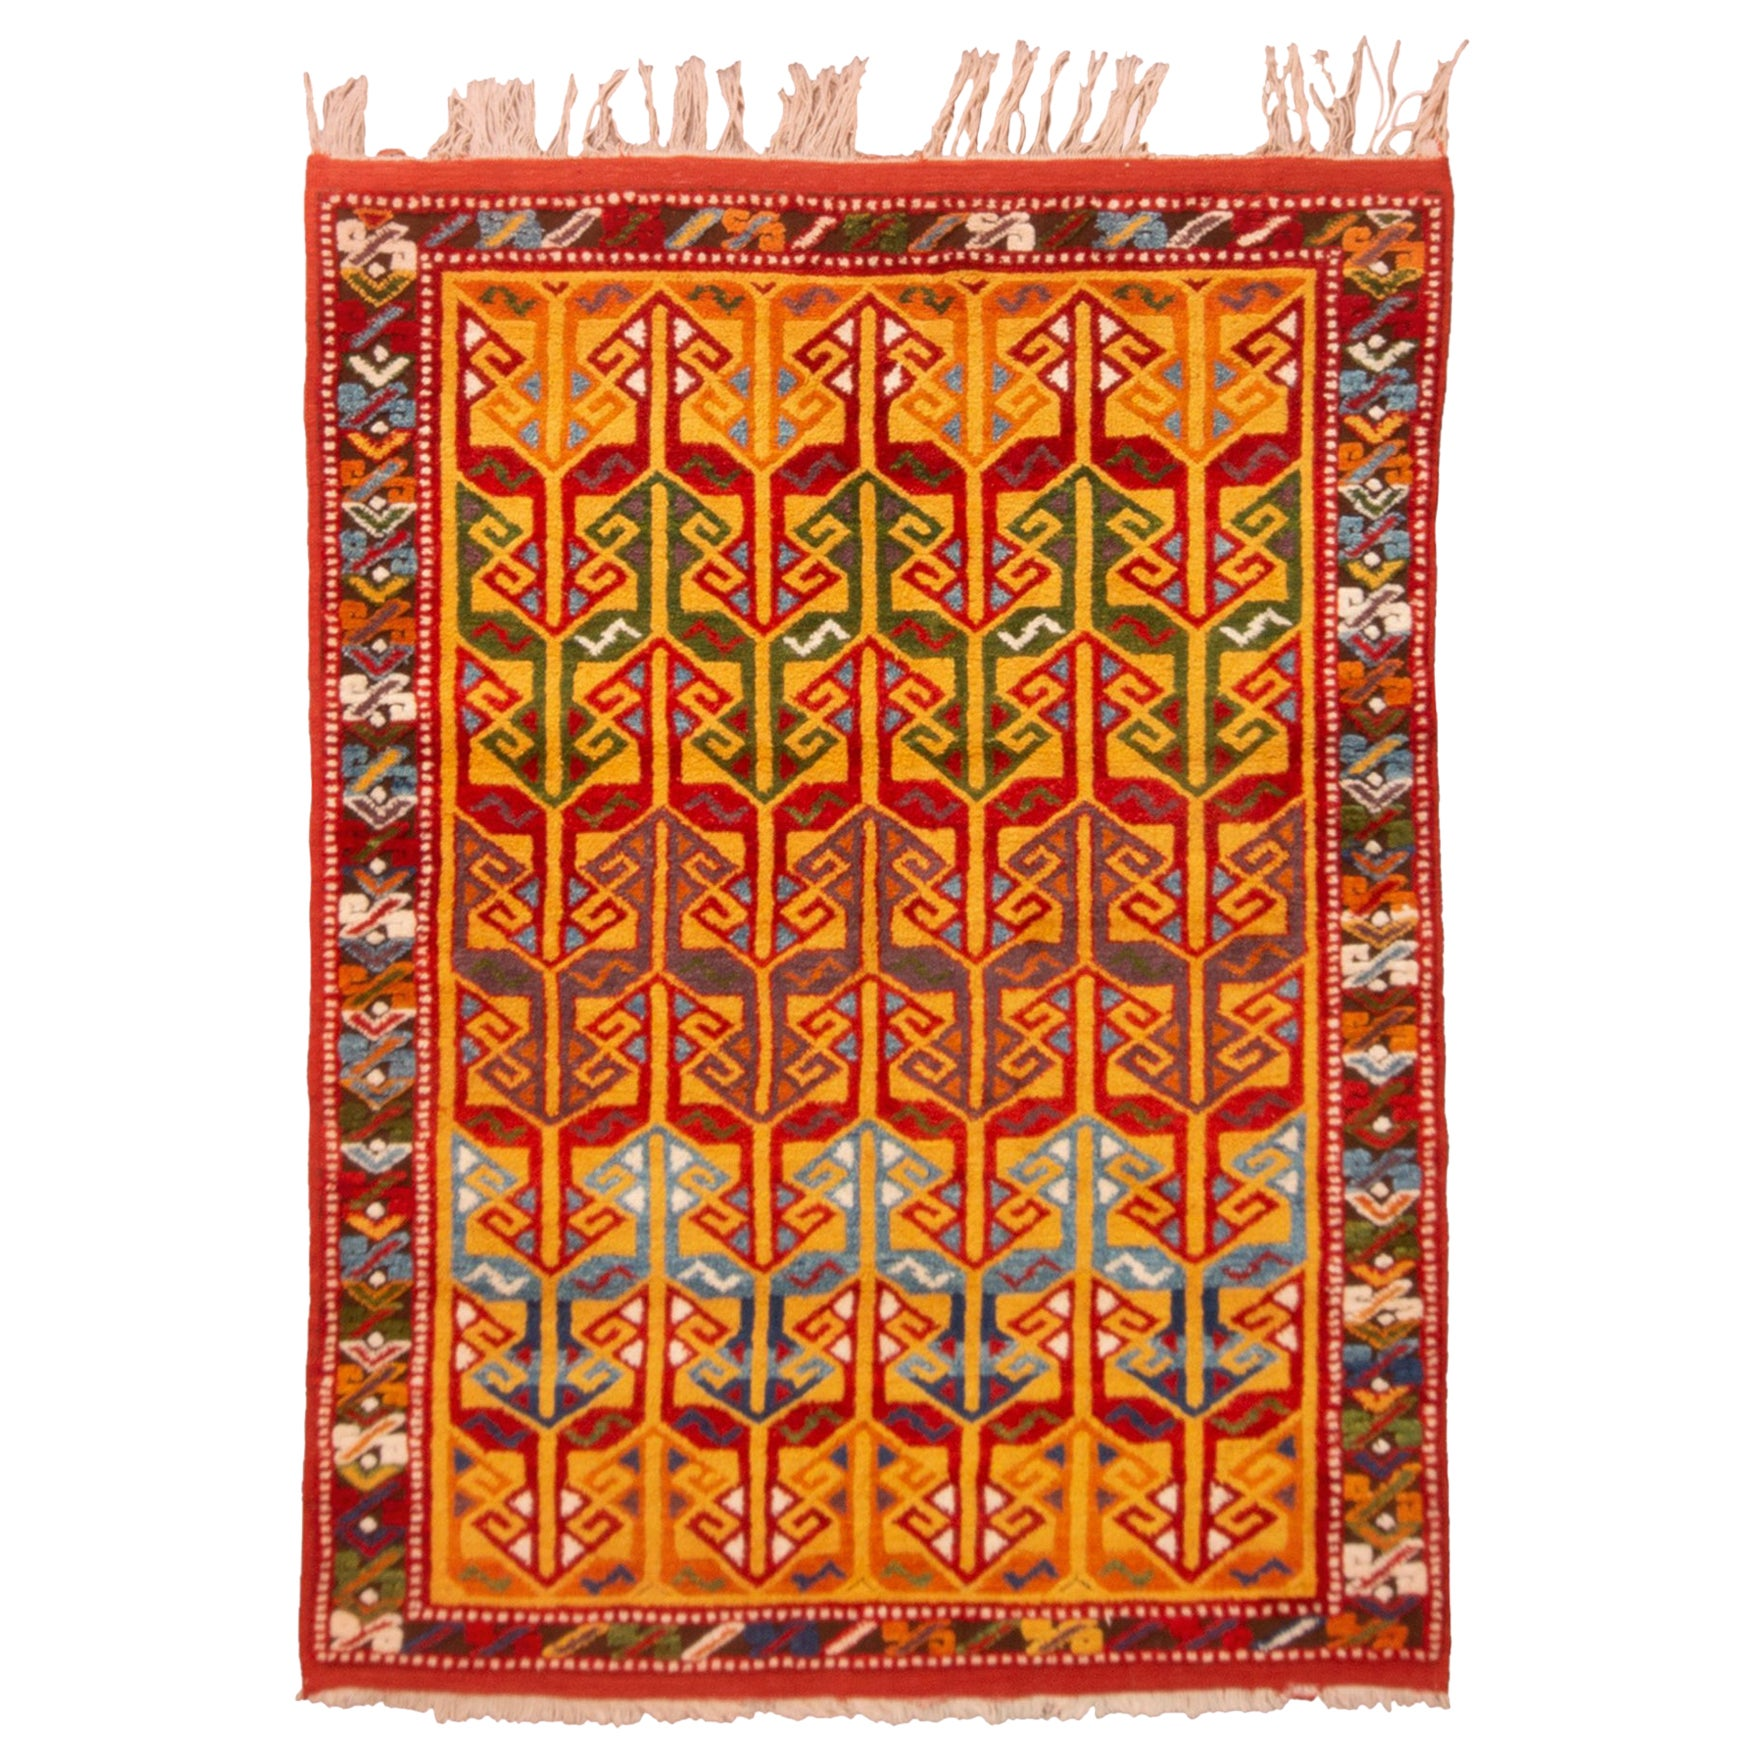 Modern Transitional Red and Golden-Yellow Wool Rug